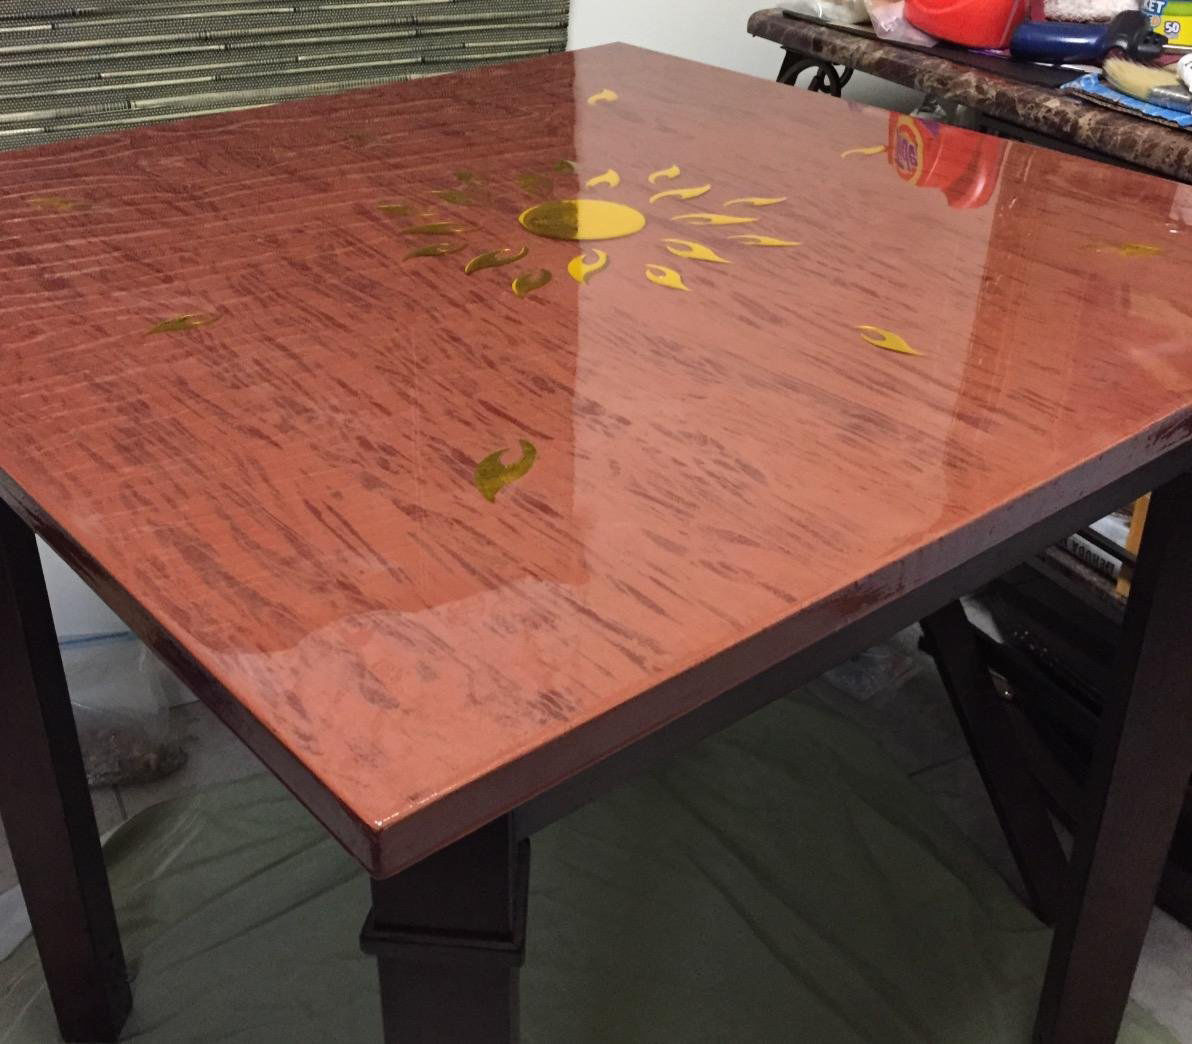 Clear Epoxy Resin Bar Table Coating Wood High-Gloss UV Stable General Purpose Crafting Pieces